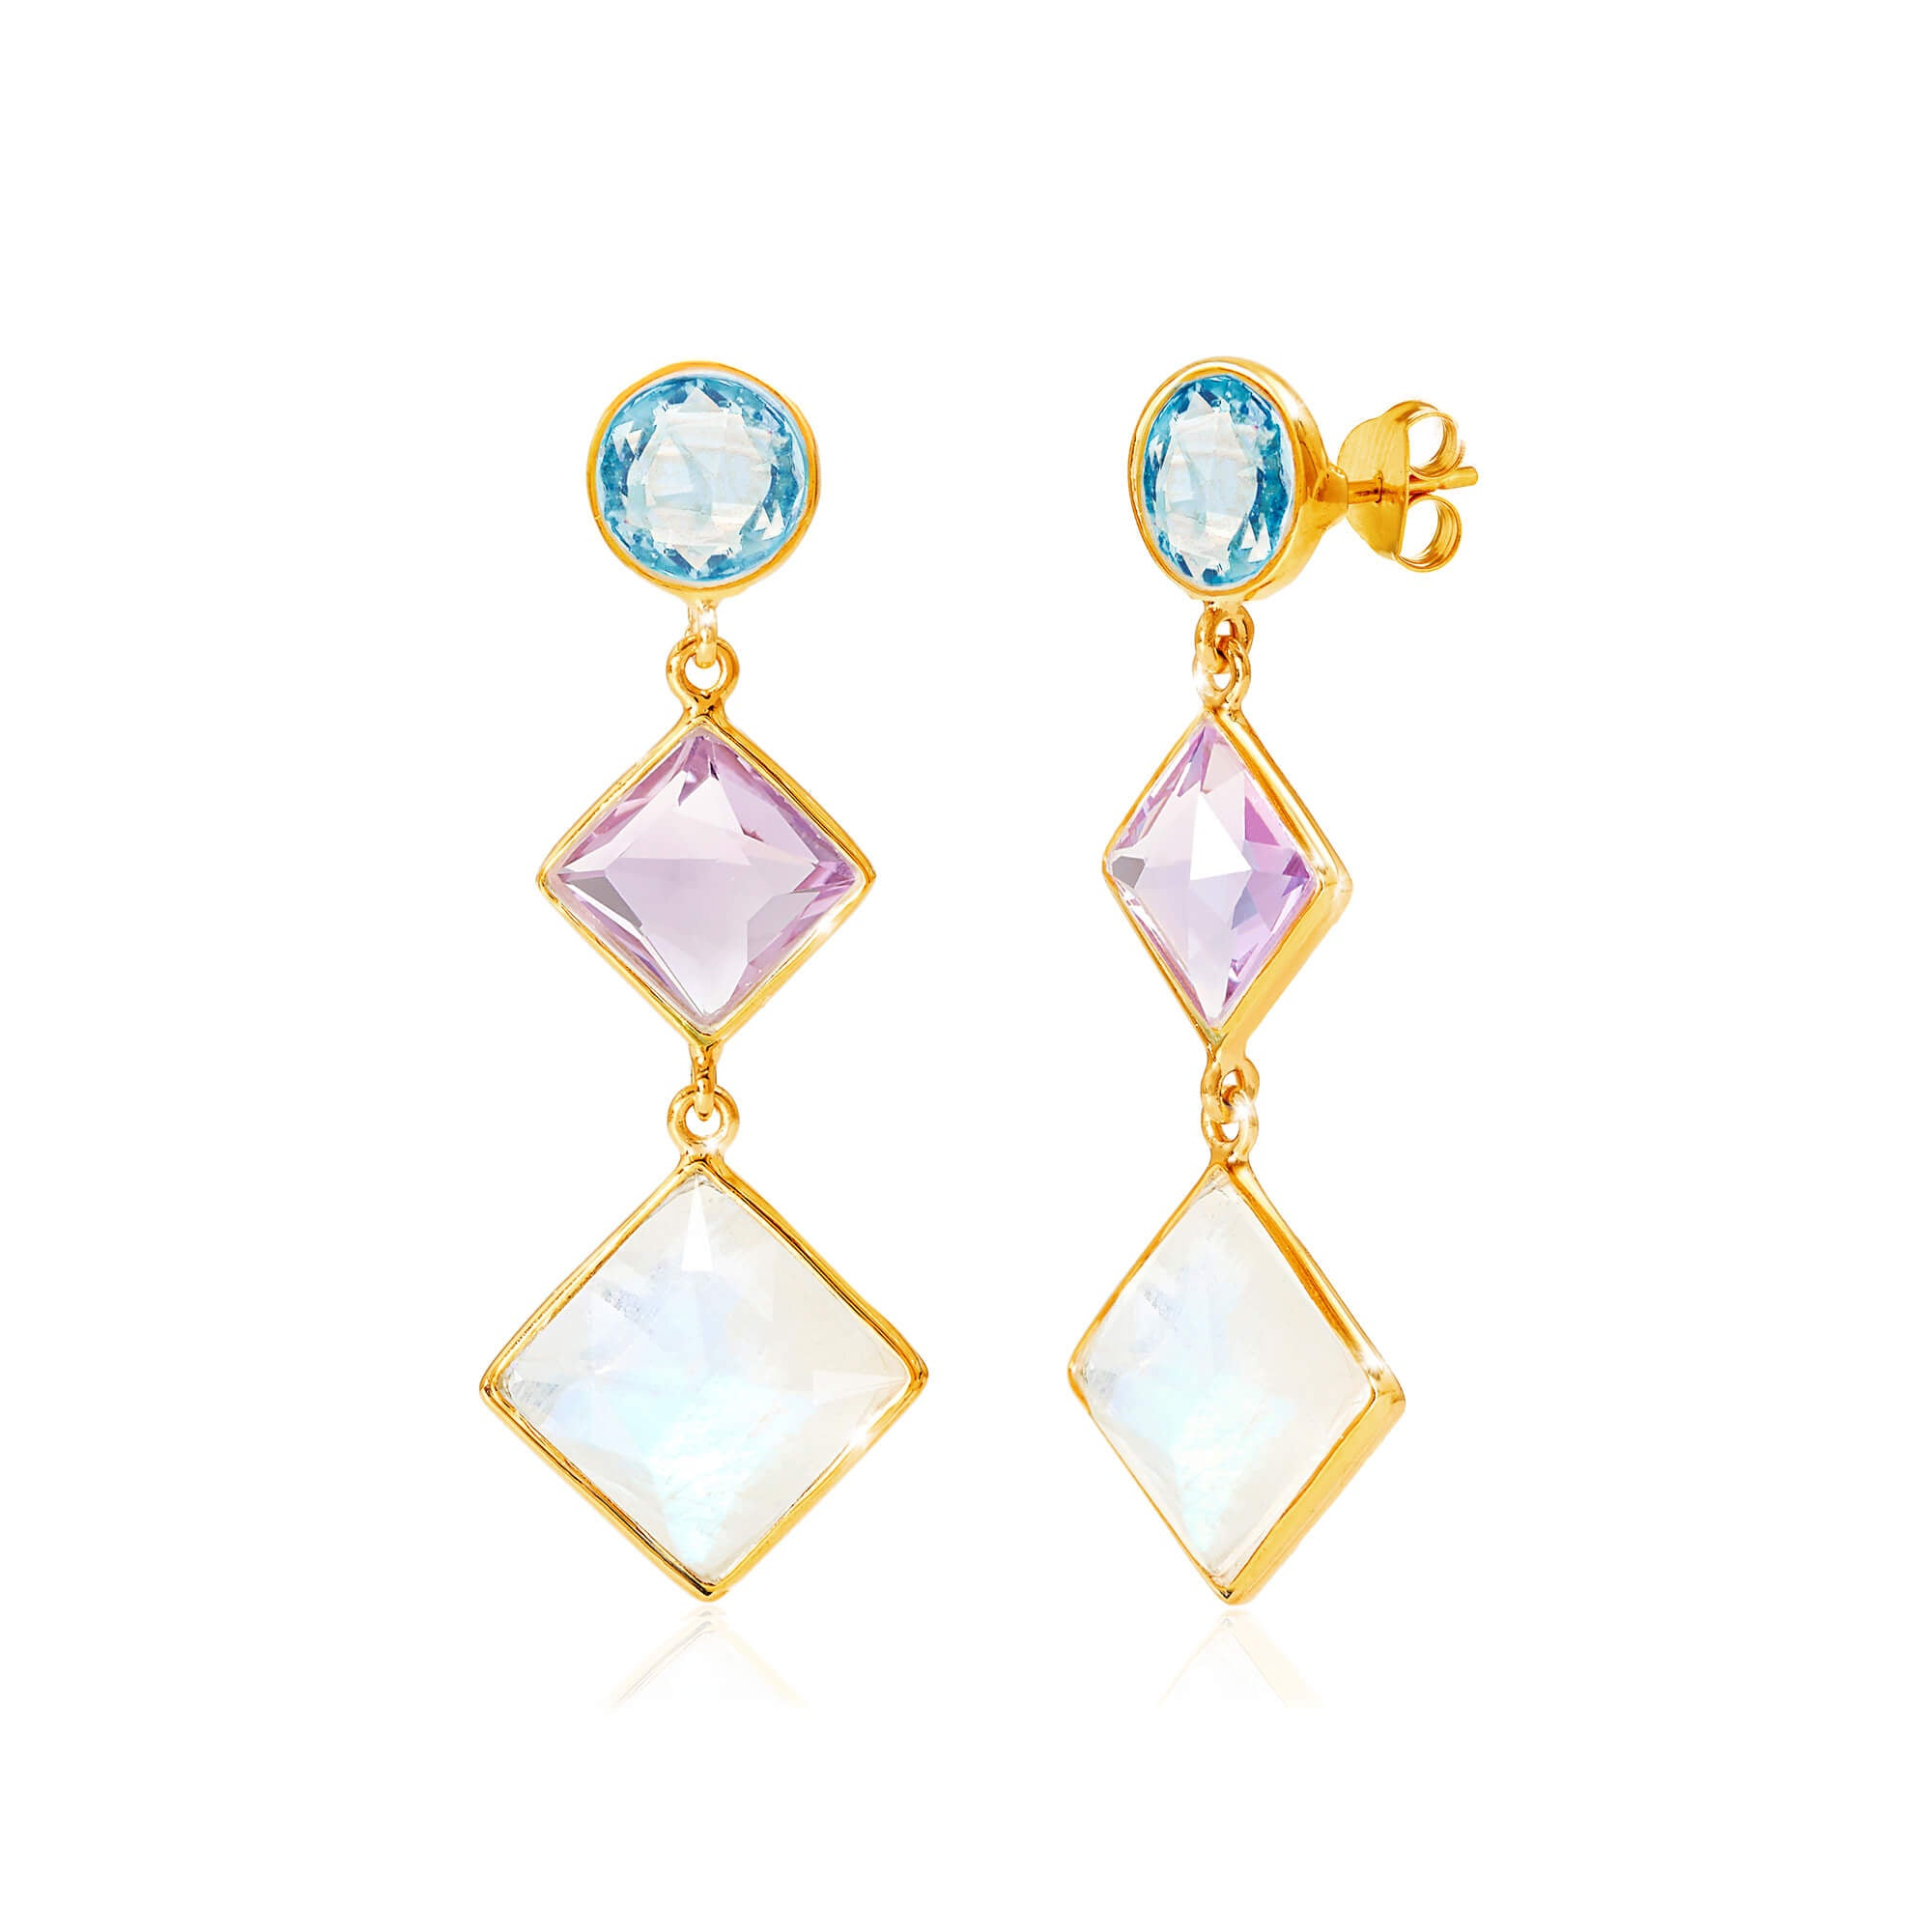 house gem account ted jewelry earrings chrysoprase muehling posts big